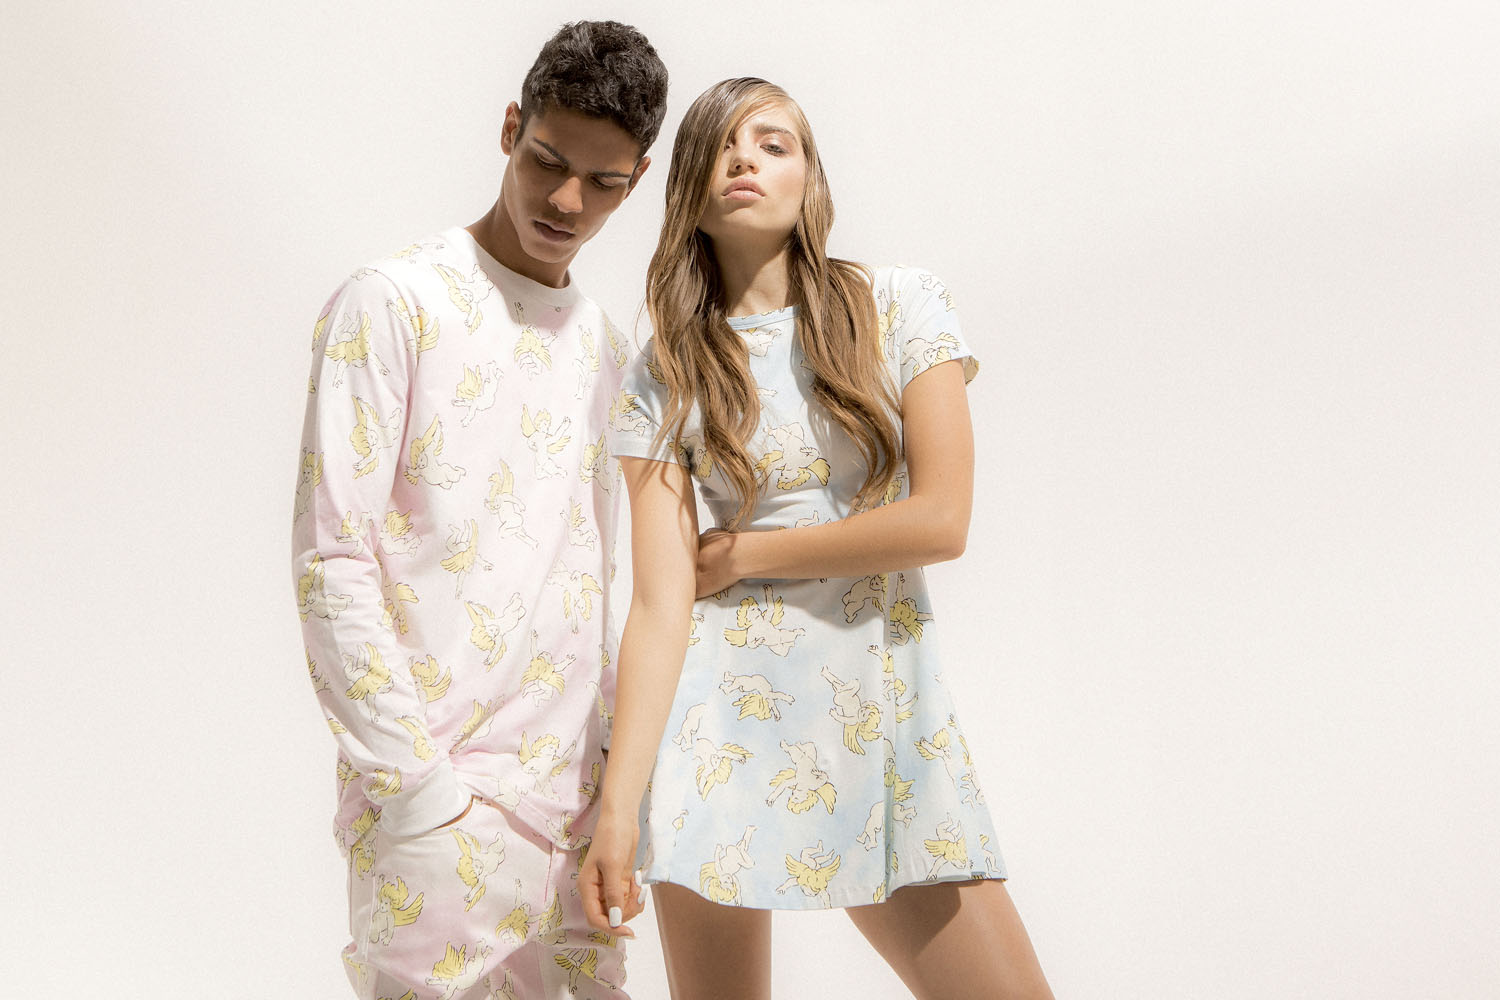 JOYRICH 2015 Spring Summer Collection